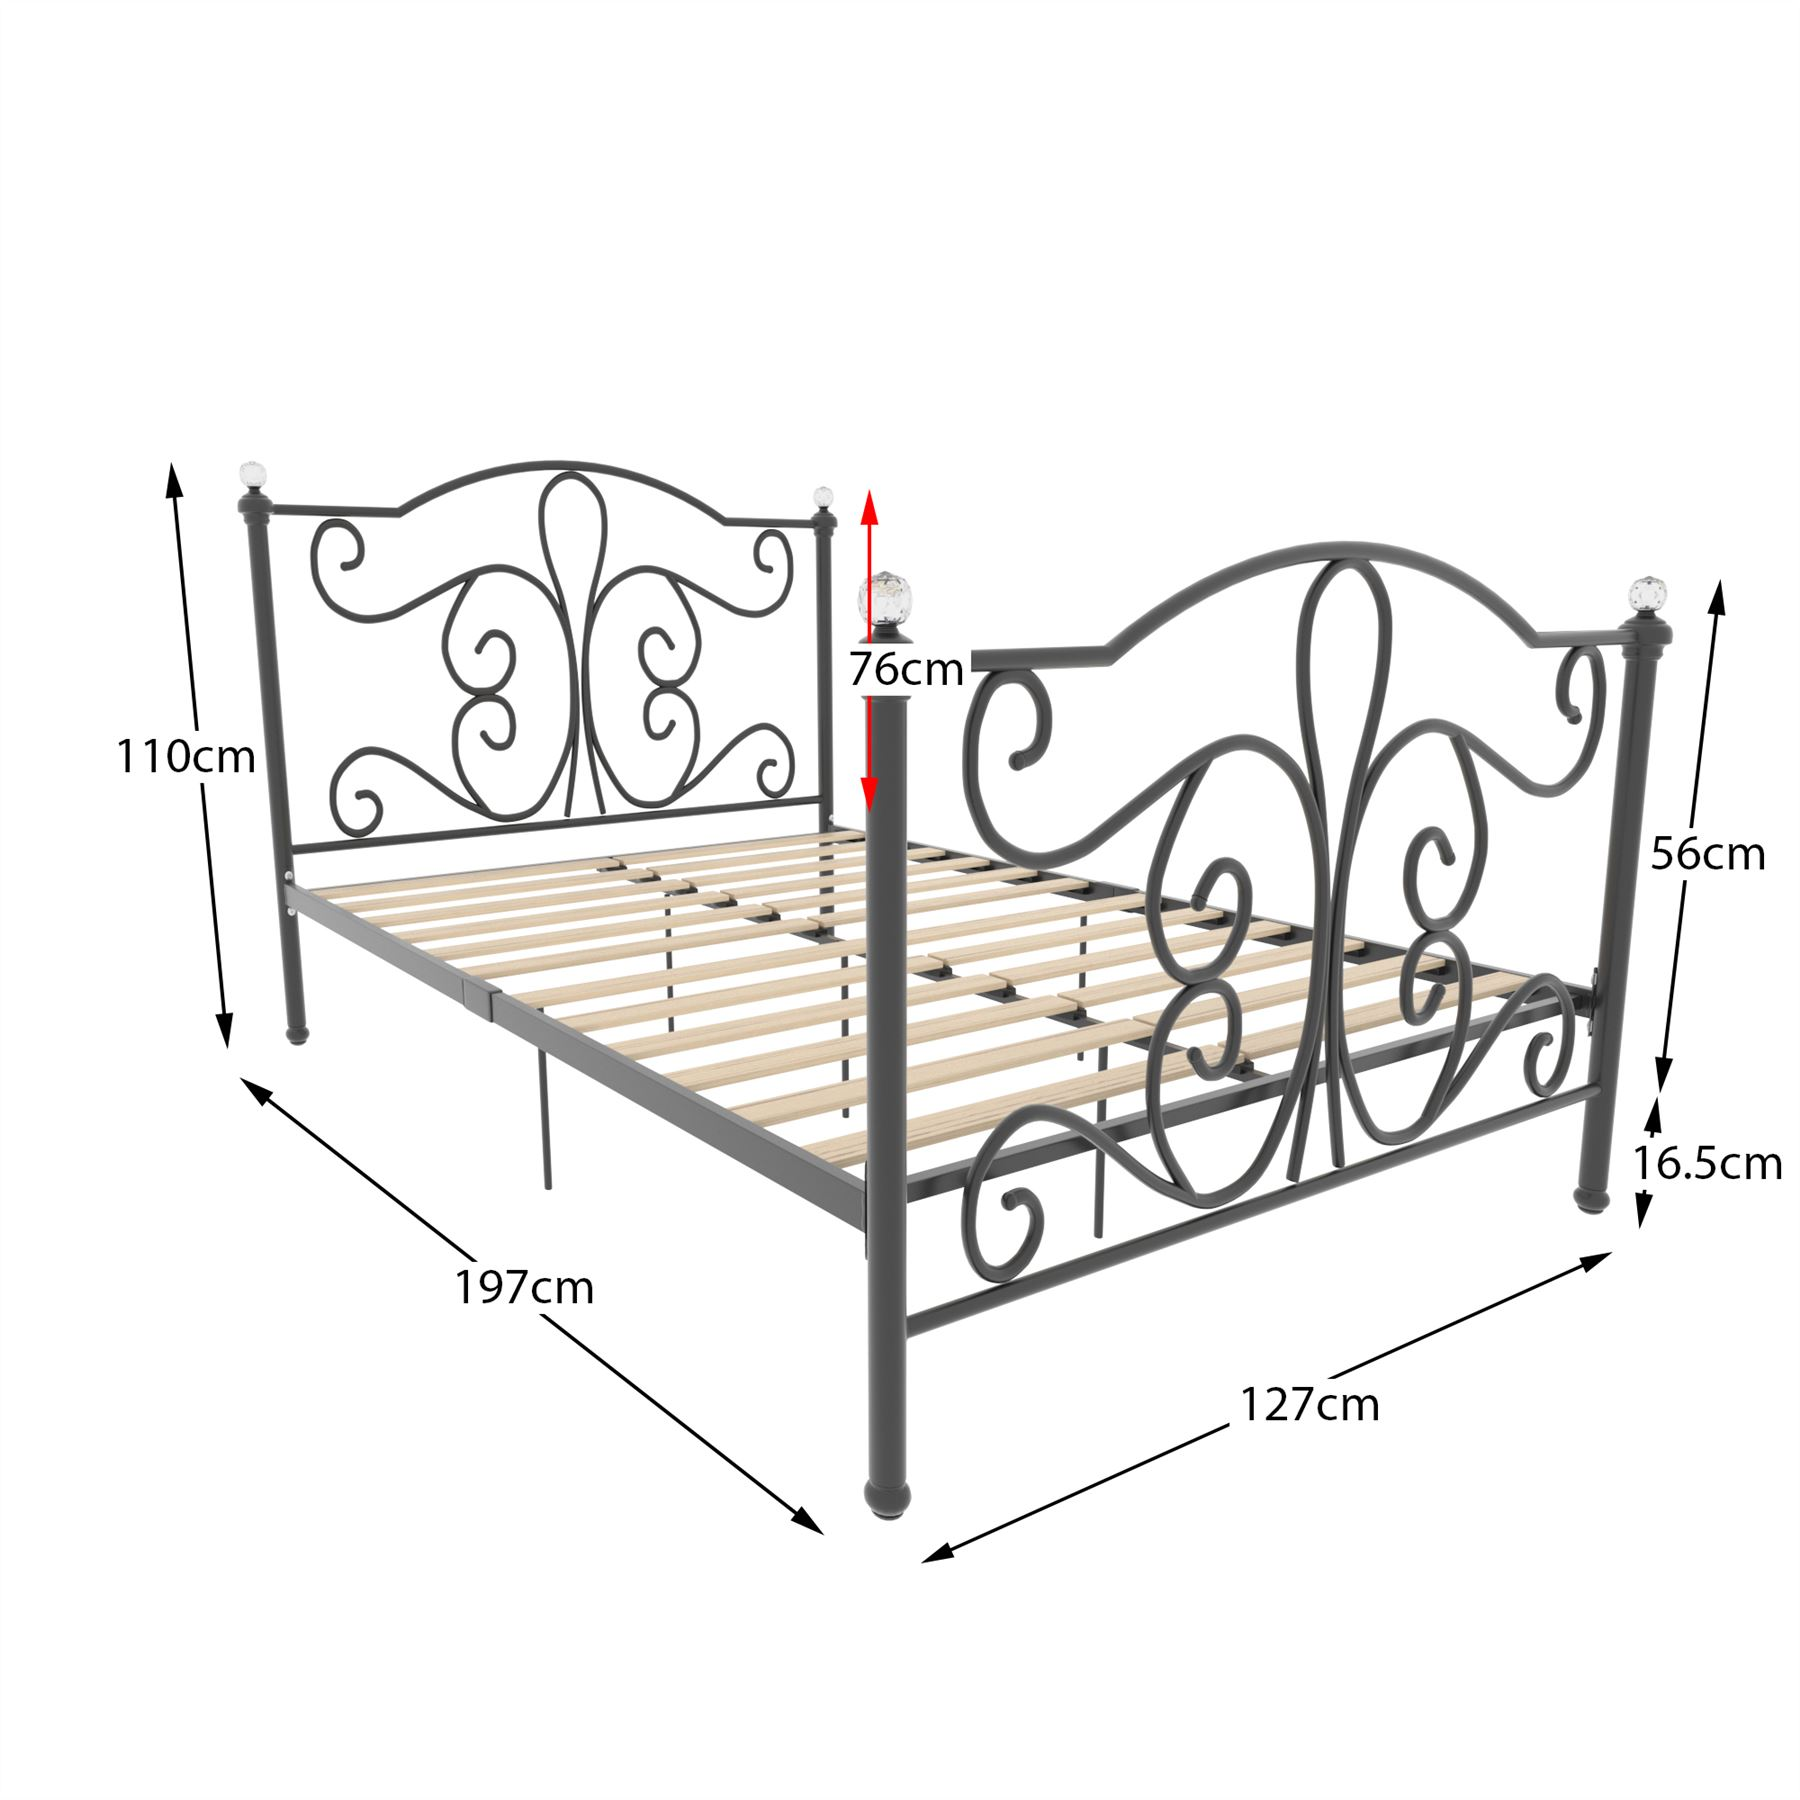 Awe Inspiring Details About Metal Bed Double King Size Frame 4Ft 4Ft6 5Ft Mattress Black White Chicago Onthecornerstone Fun Painted Chair Ideas Images Onthecornerstoneorg